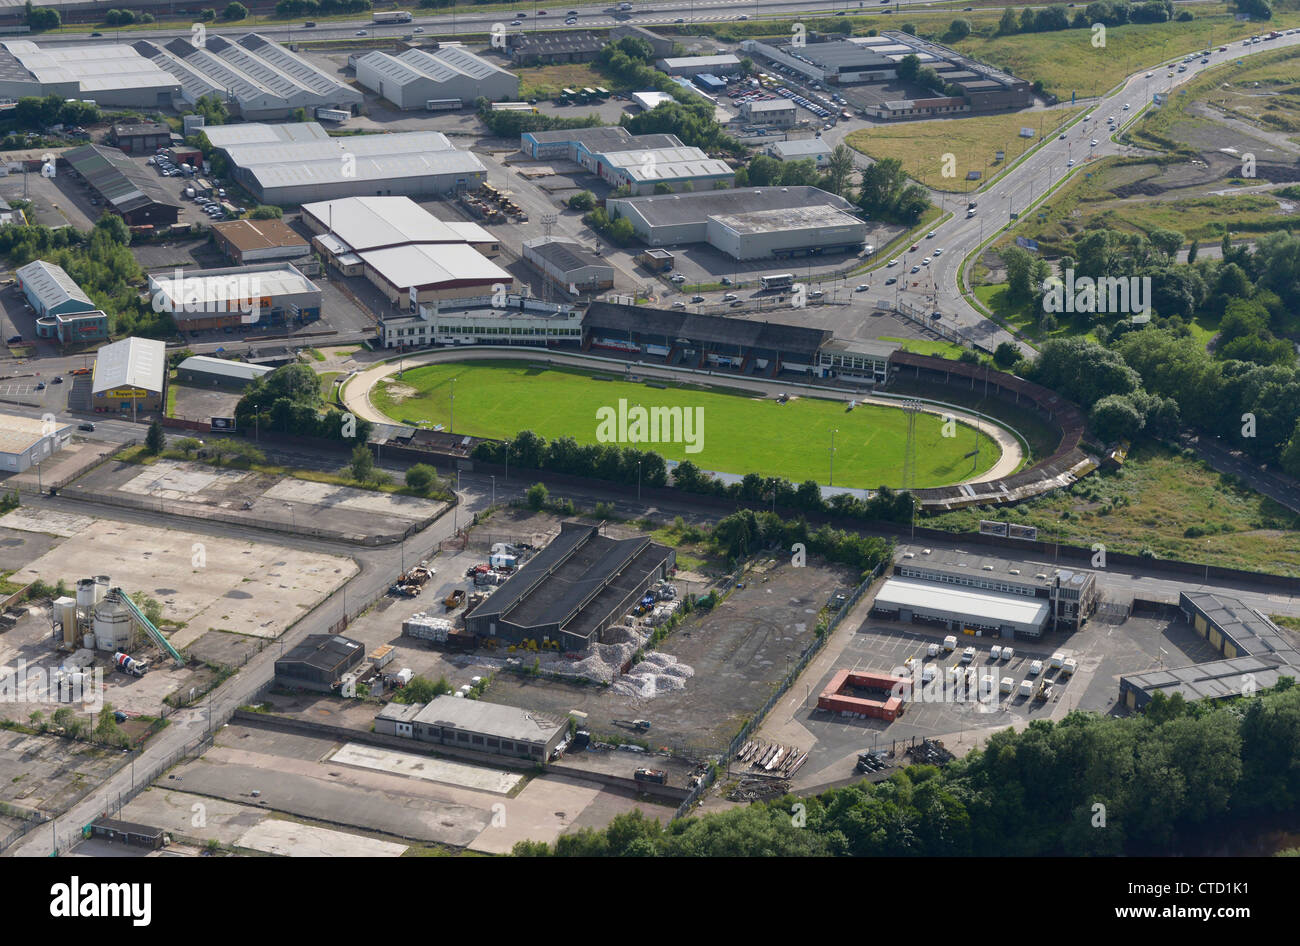 Aerial view Shawfield Stadium greyhound racing venue in the town of Rutherglen, South Lanarkshire, Glasgow. - Stock Image